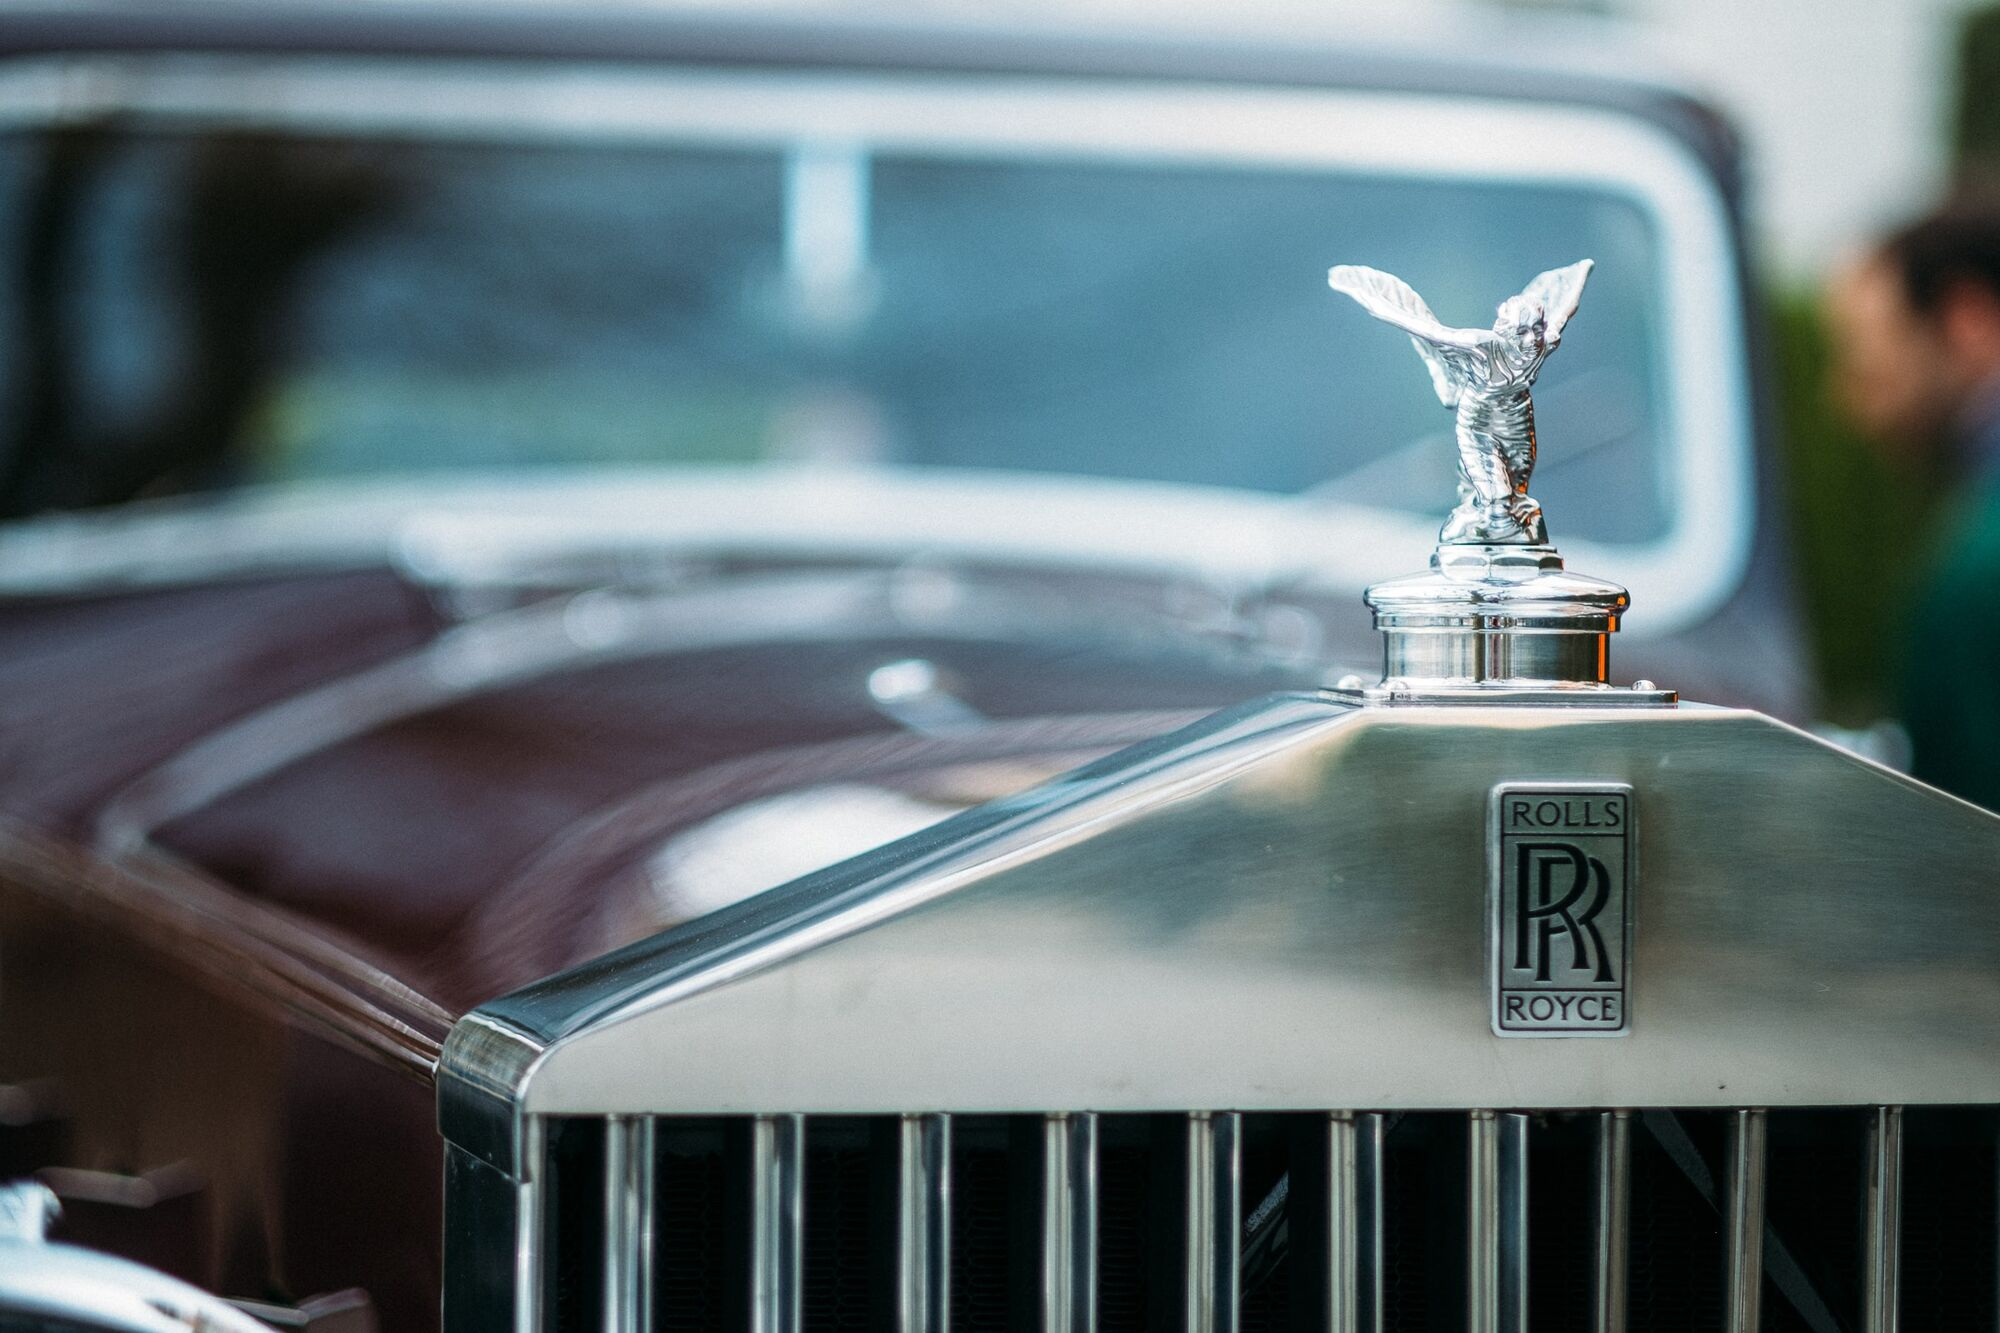 Rolls-Royce cover